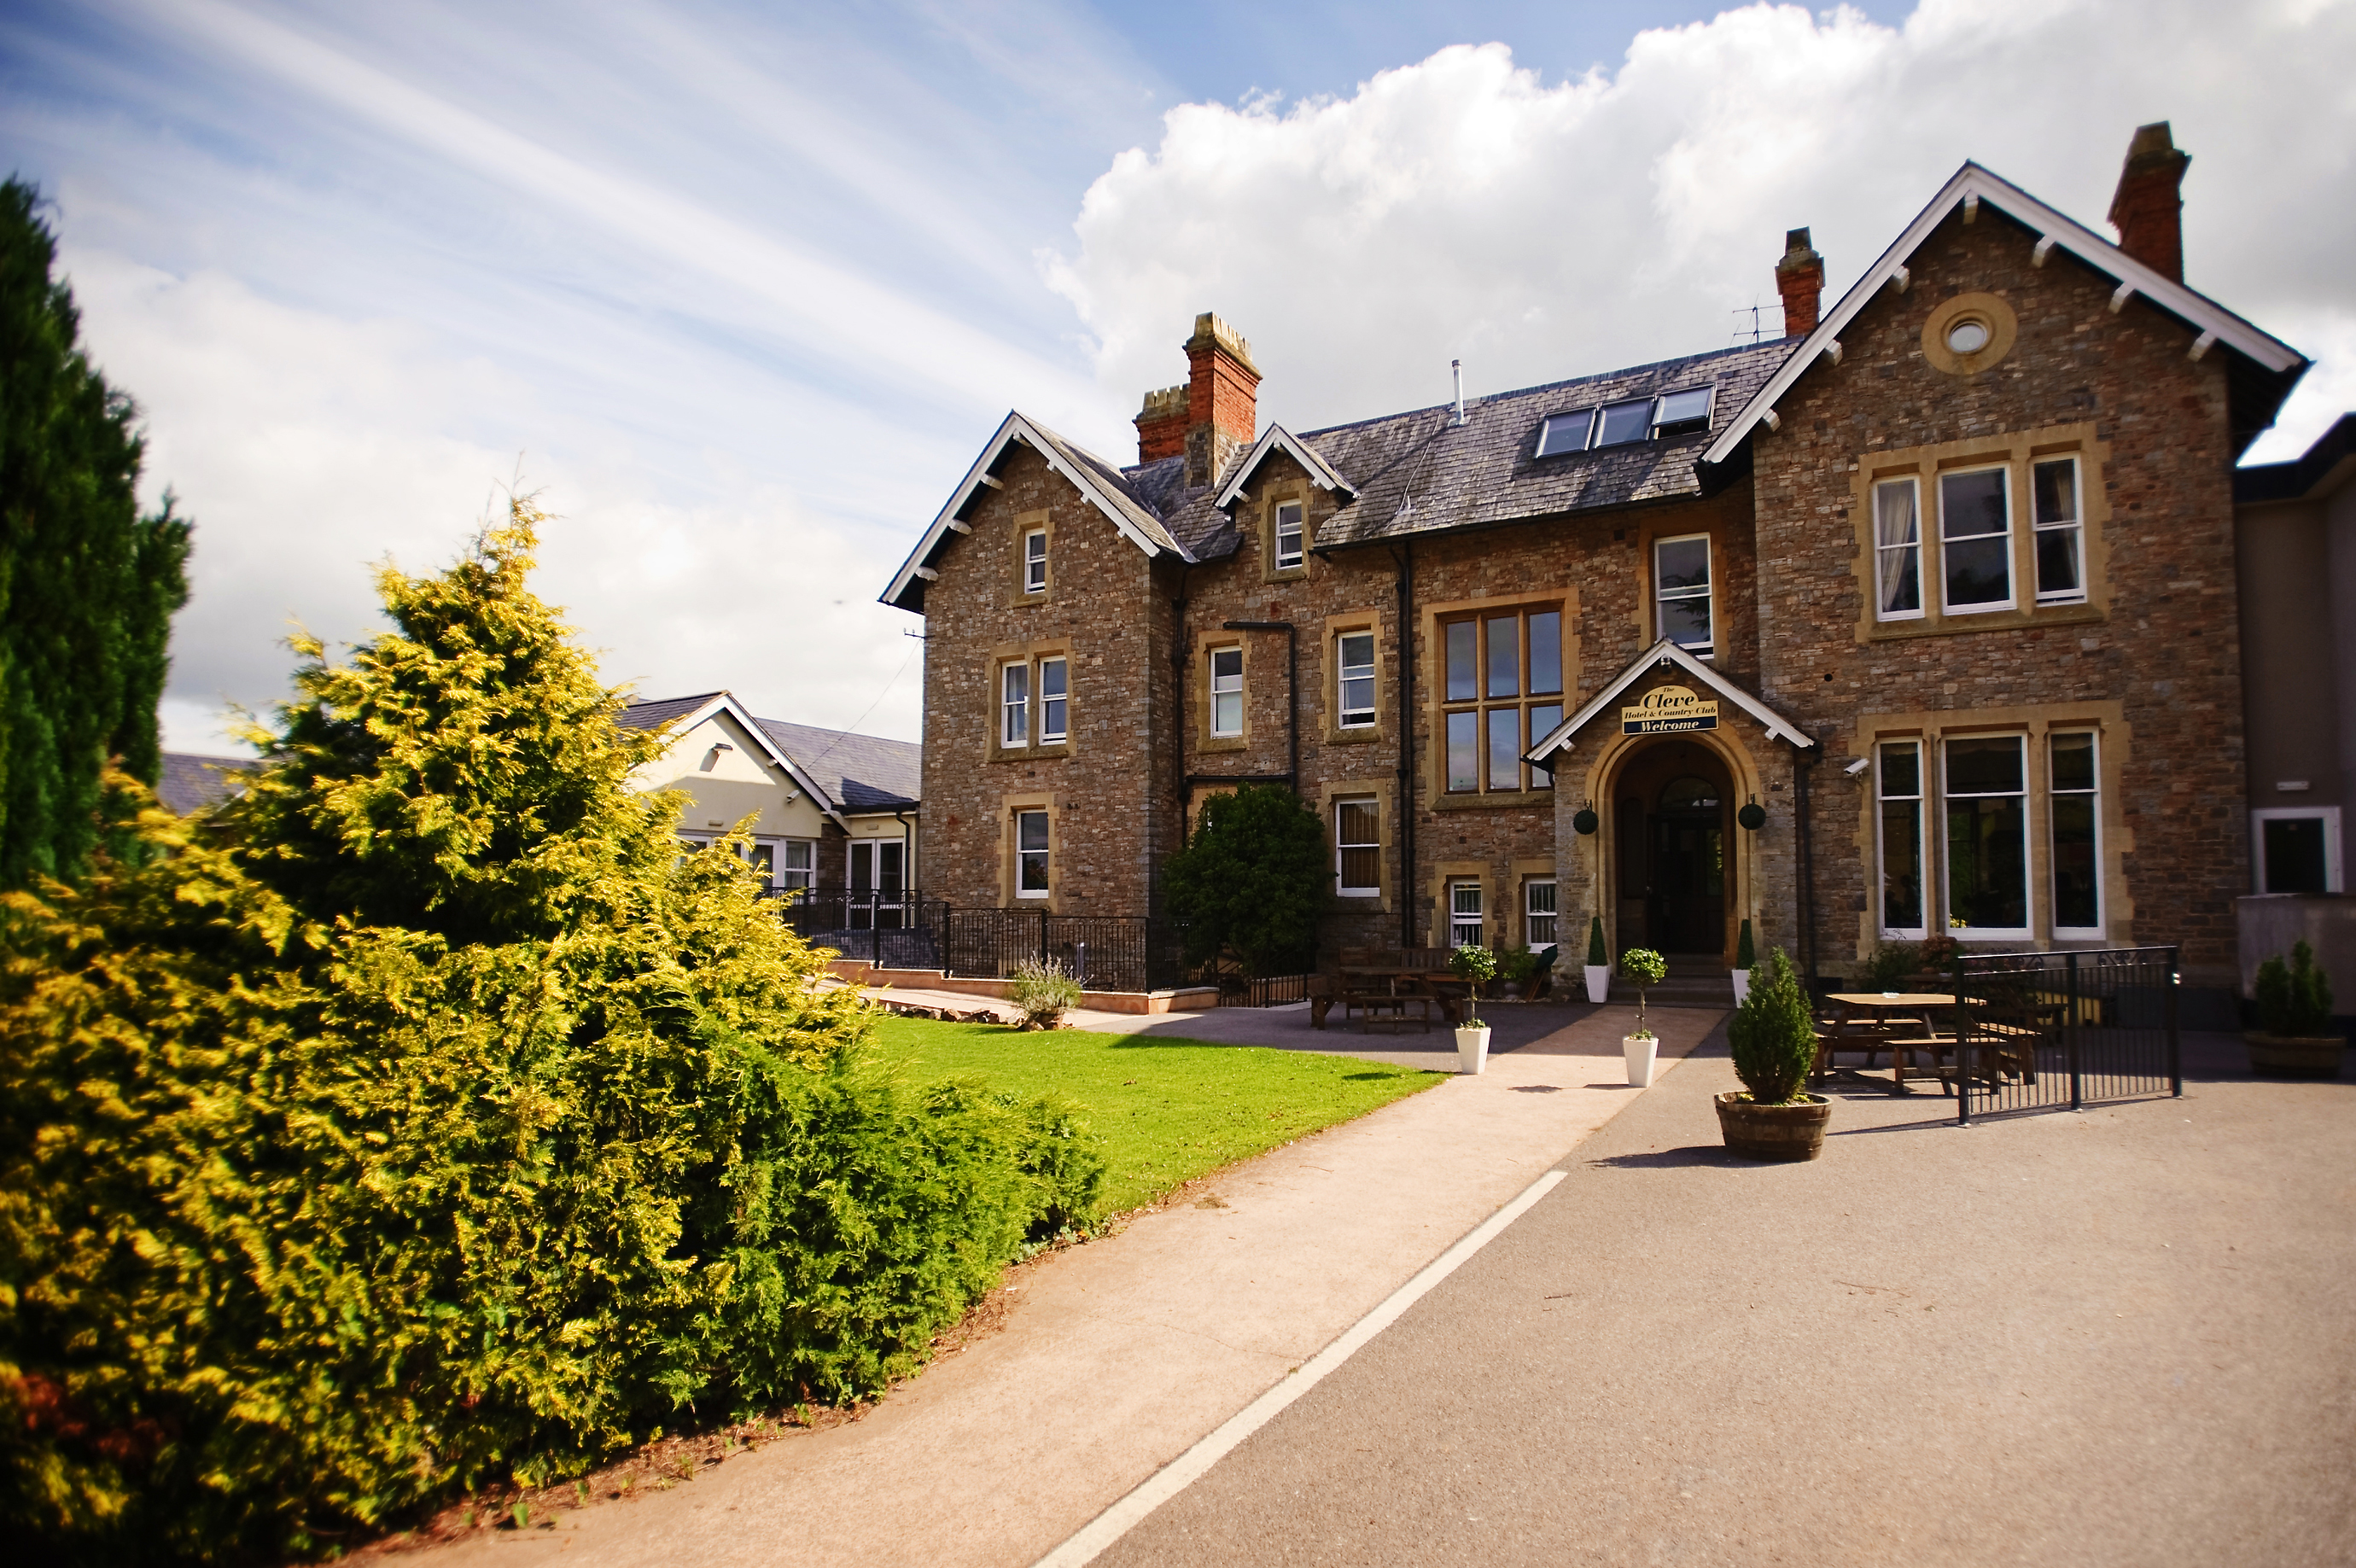 The Cleve Country House Hotel